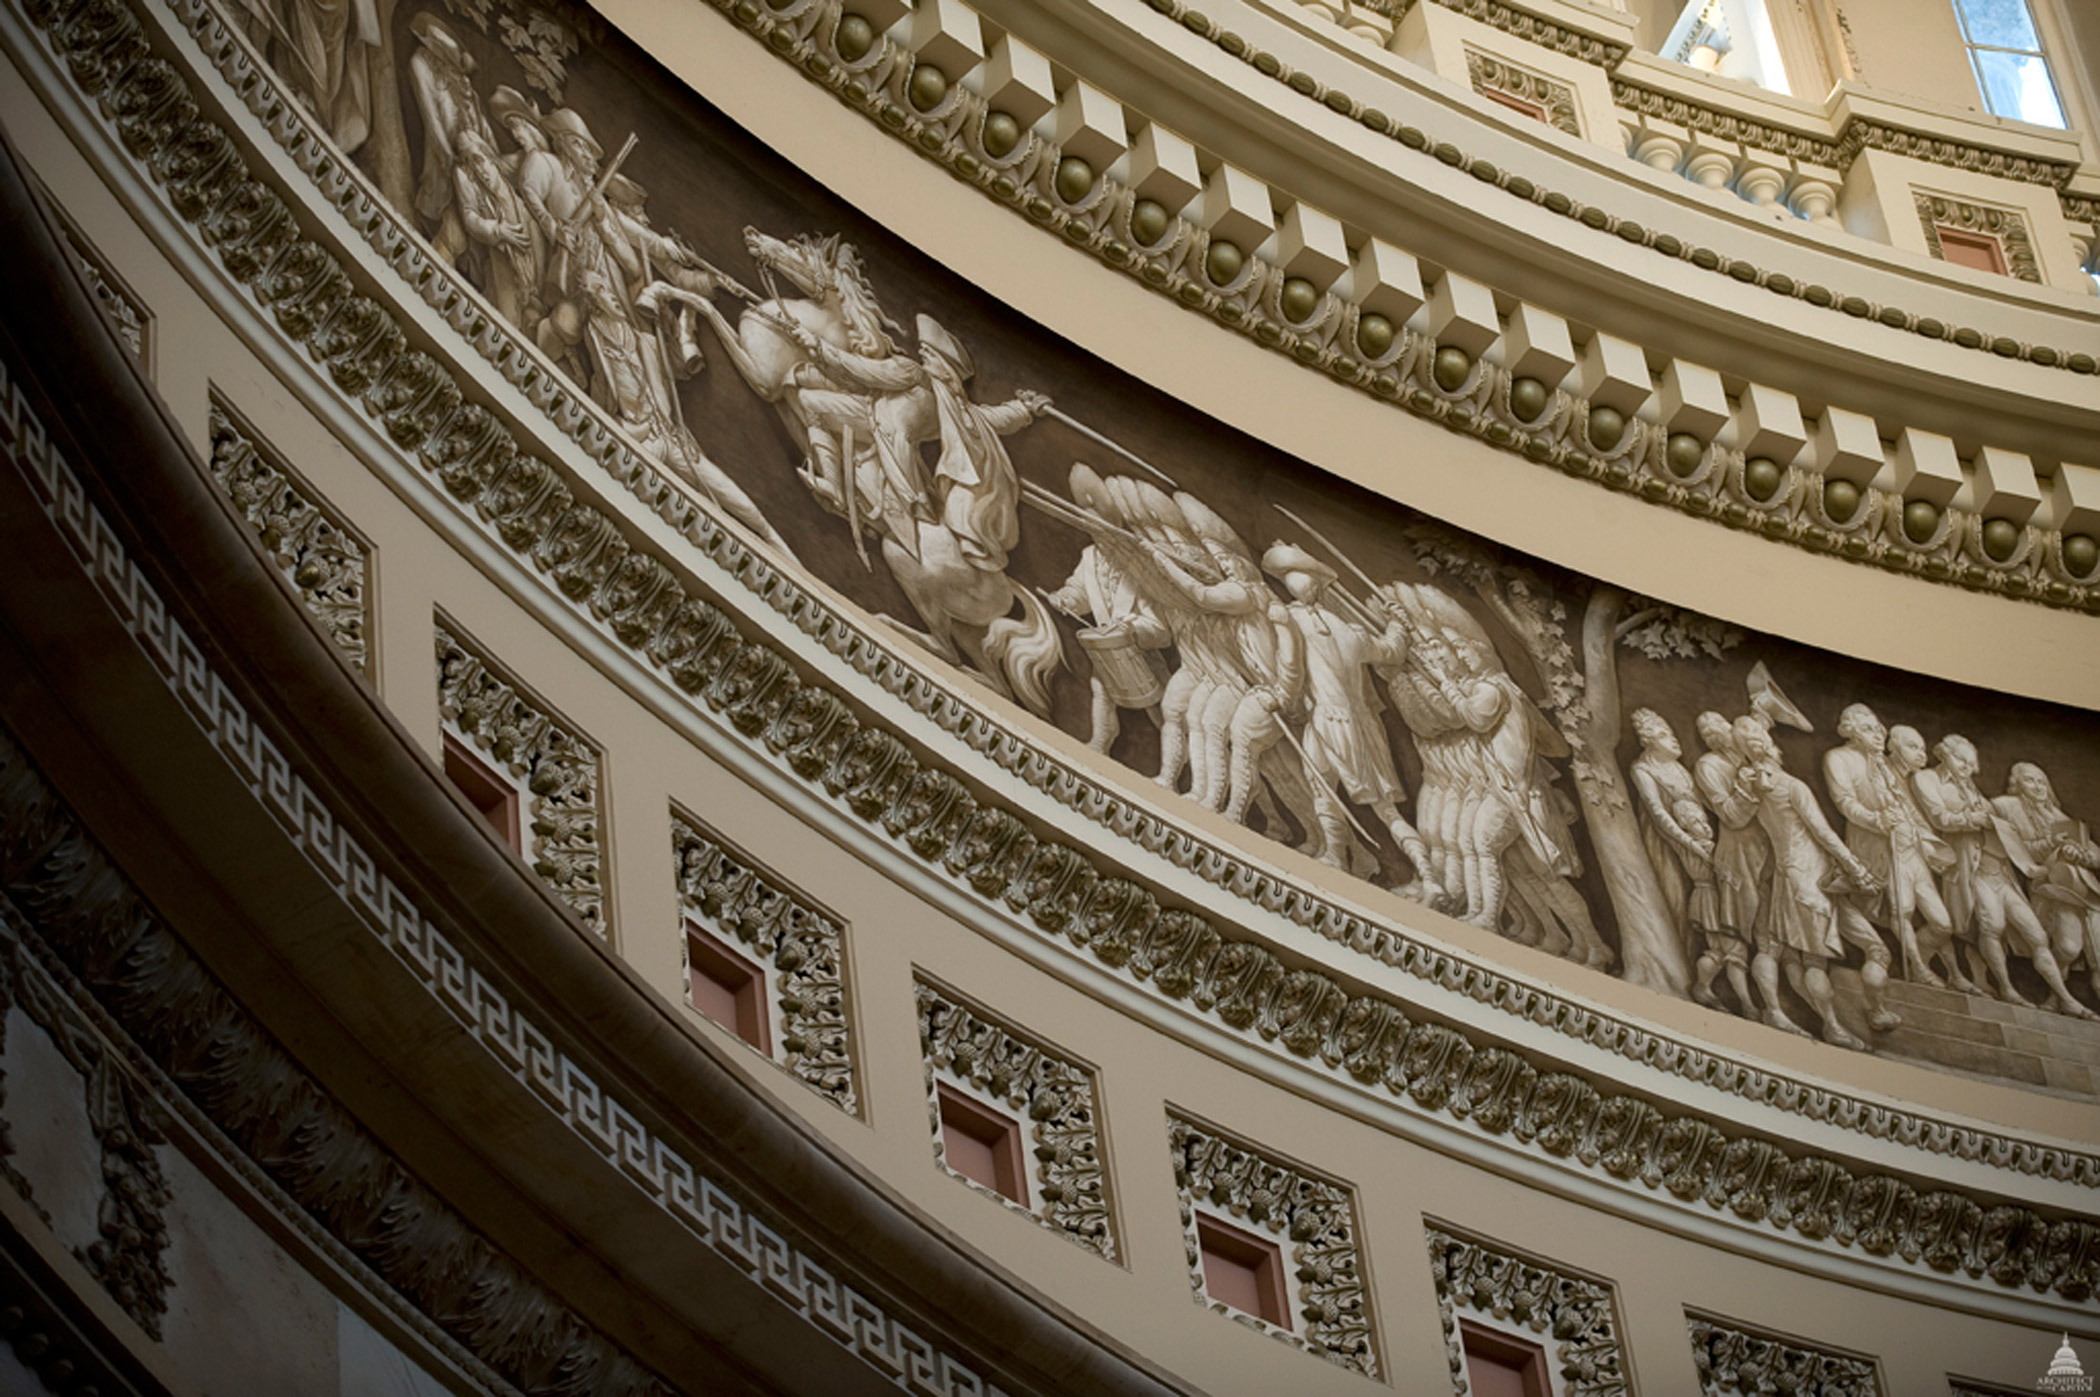 The Frieze of American History in the Rotunda of the United States Capitol, seen circa 2011, contains a painted panorama depicting significant events in American history. The frieze's 19 scenes is the work of three artists: Constantino Brumidi, Filippo Constaggini and Allyn Cox.